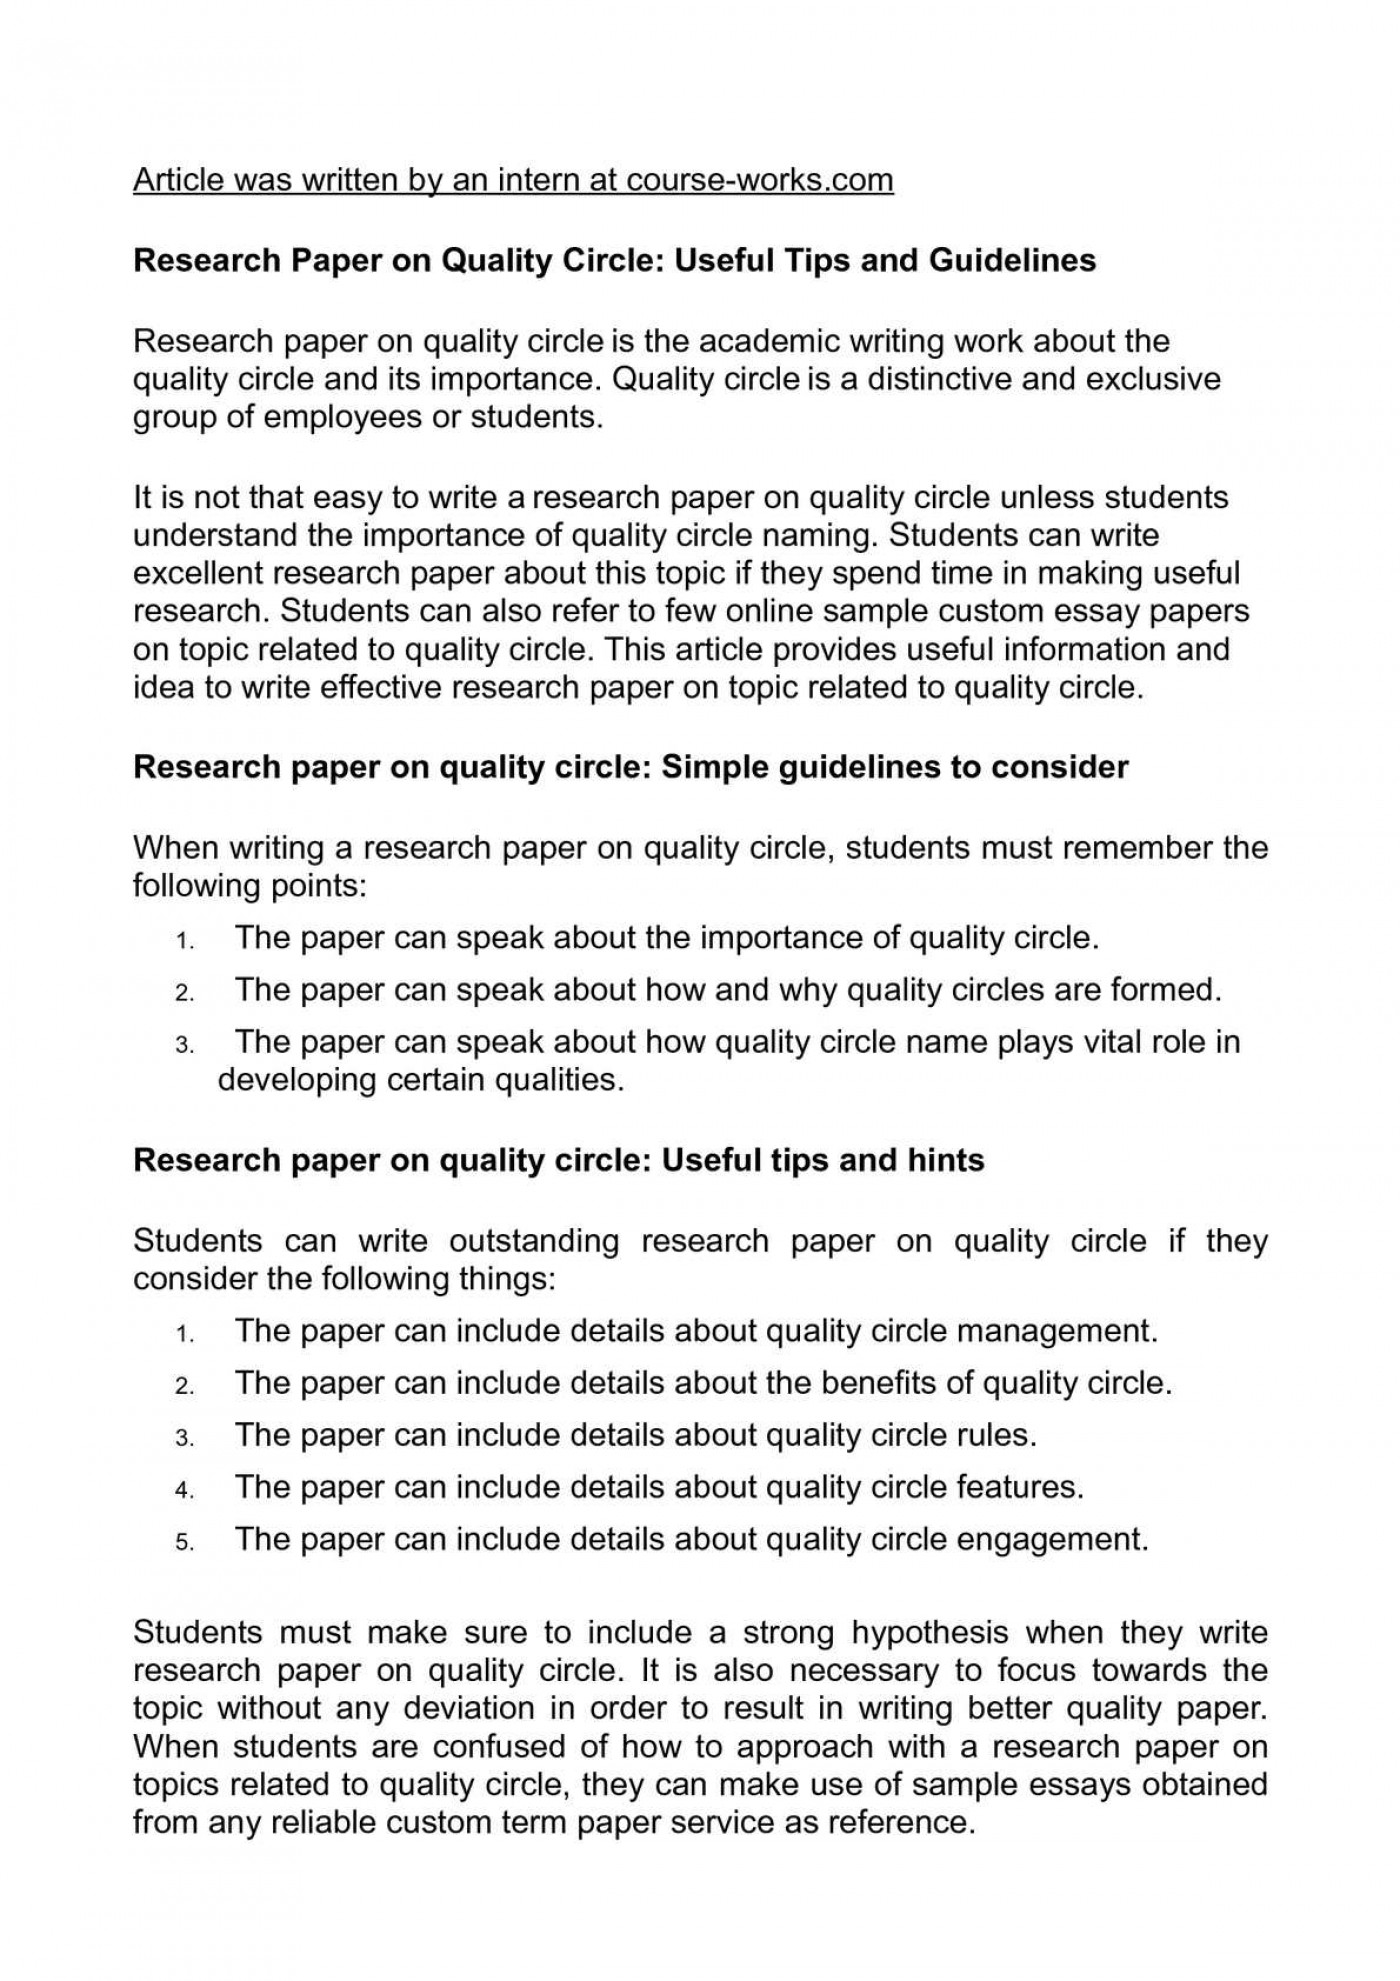 008 Easy Topics For Research Paper Awful A In Philippines Persuasive Psychology 1400